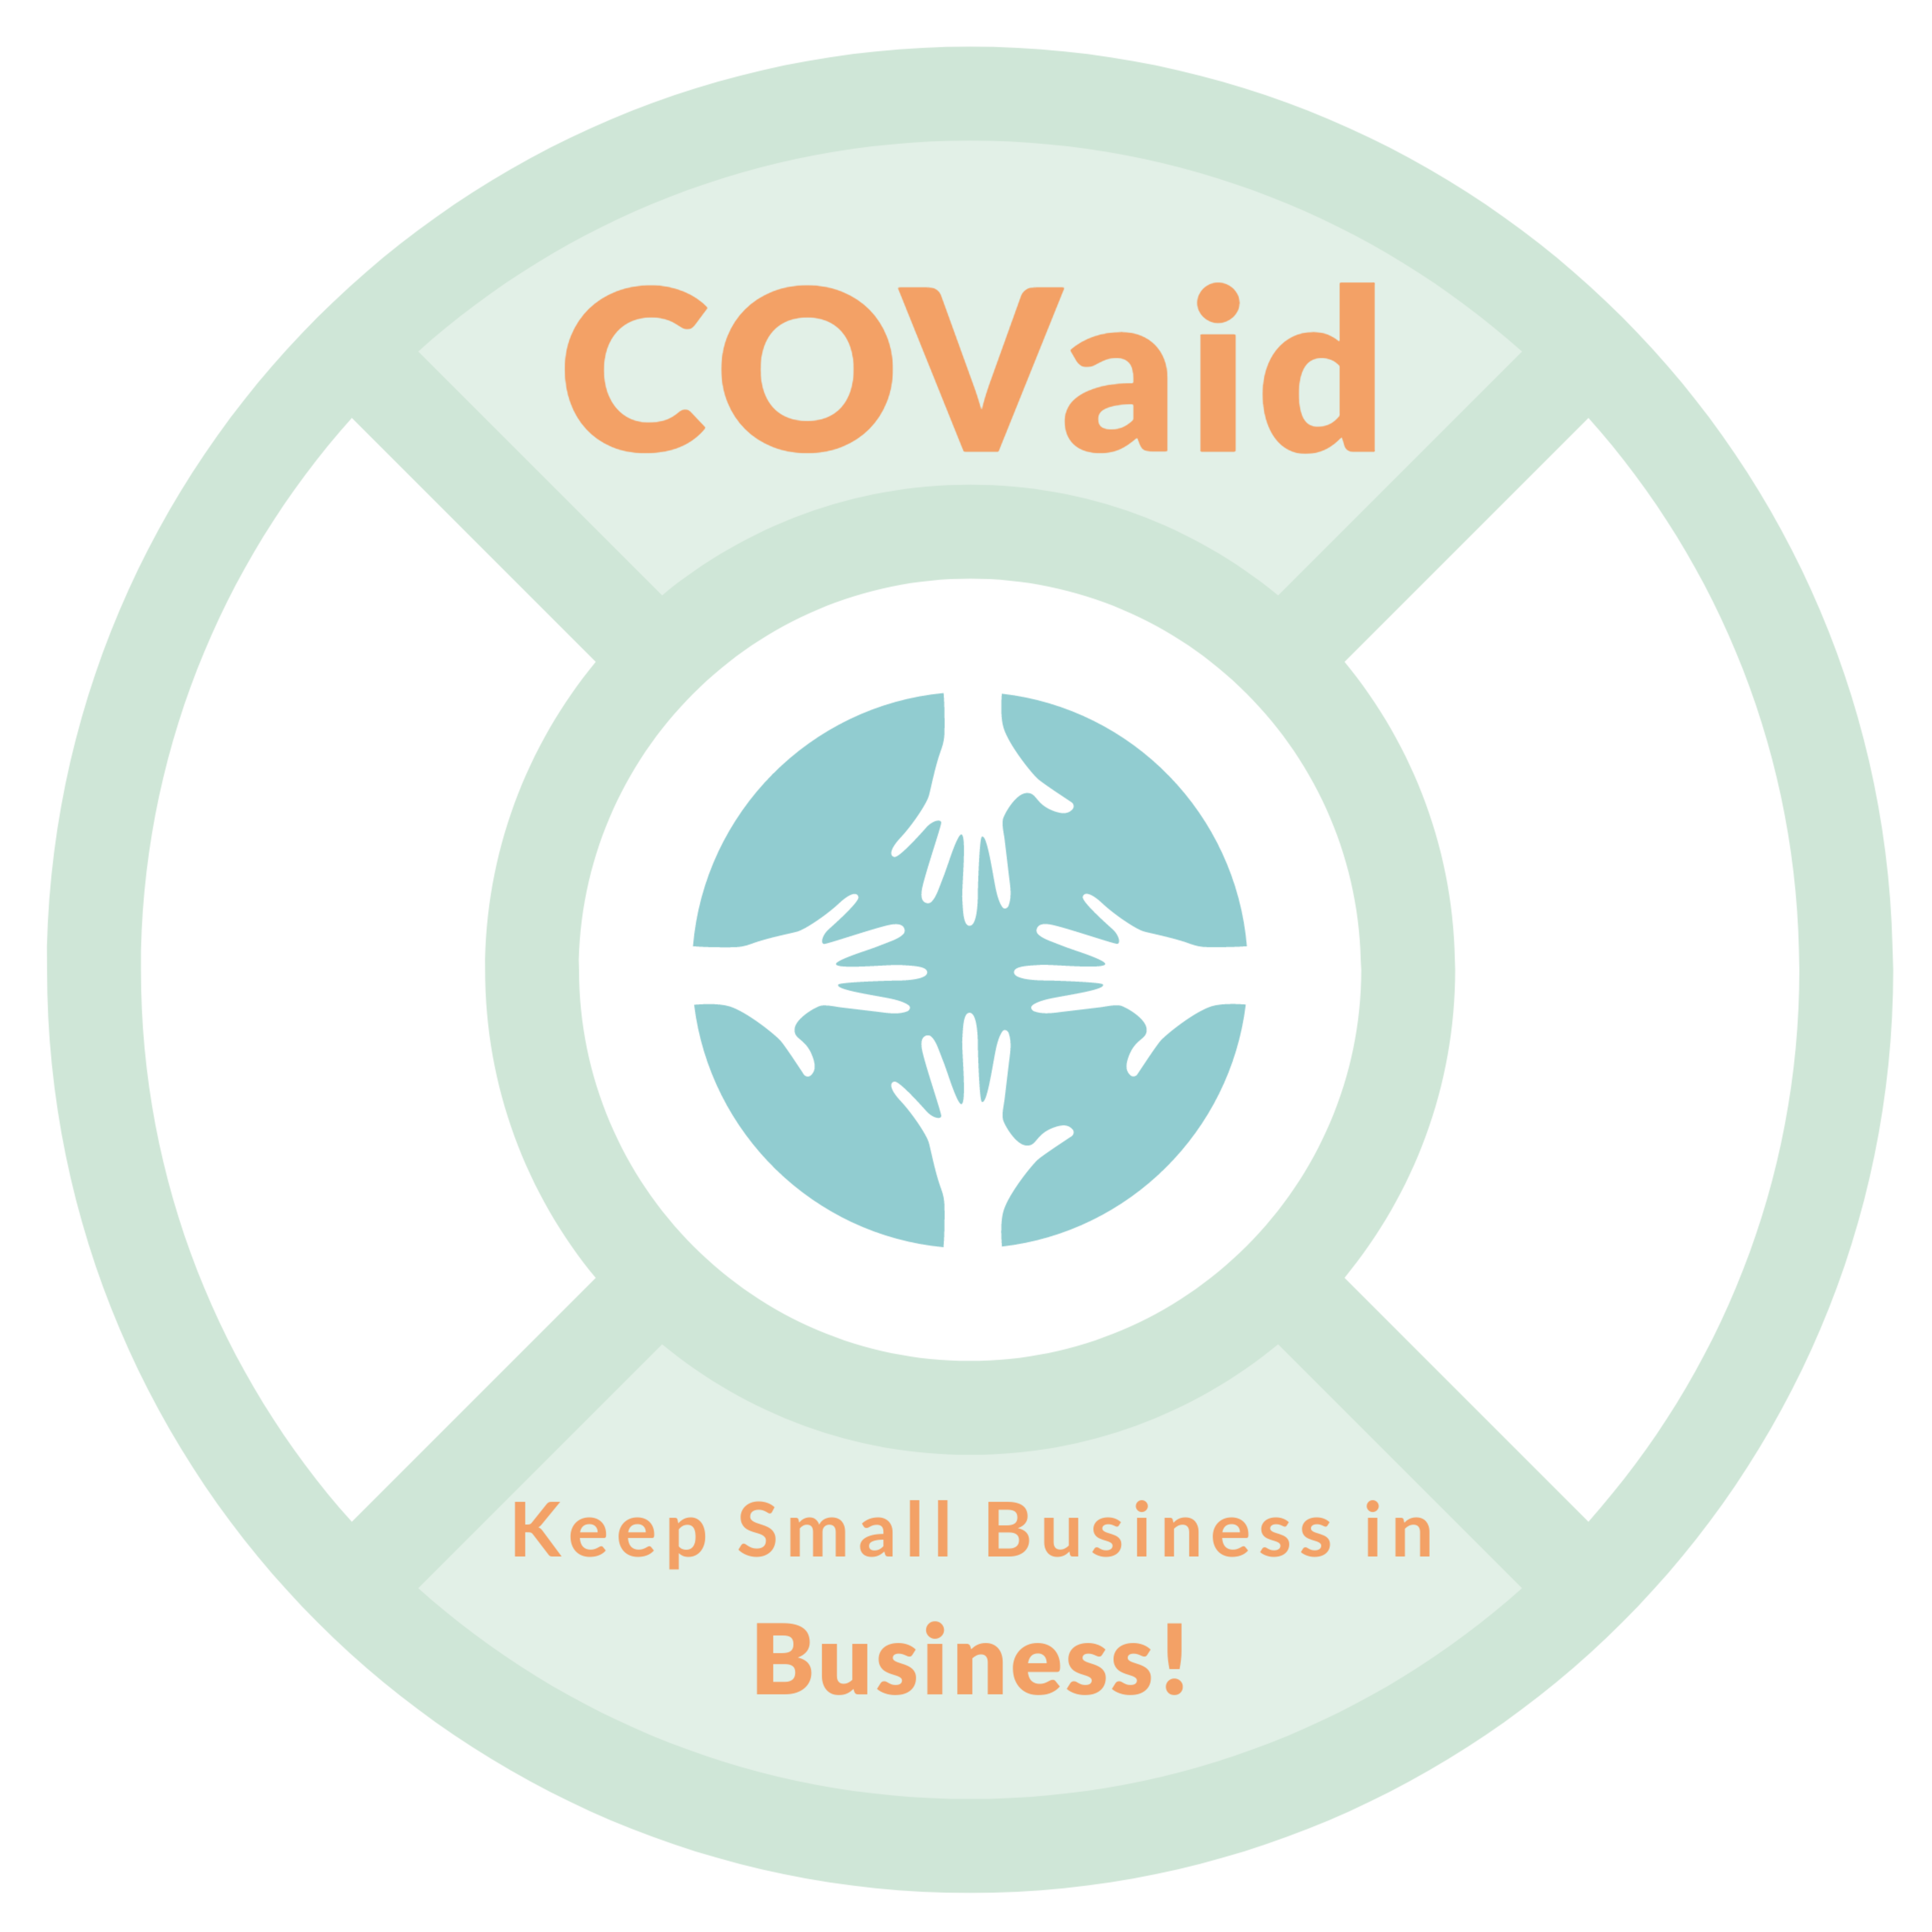 """CROWDFUNDING STARTUP, BEAUTY BACKER, INTRODUCES NEW """"COVAID"""" CATEGORY ALLOWING SMALL BUSINESSES, IMPACTED BY THE CORONAVIRUS, TO COLLECT DONATIONS WITH ZERO FEES."""